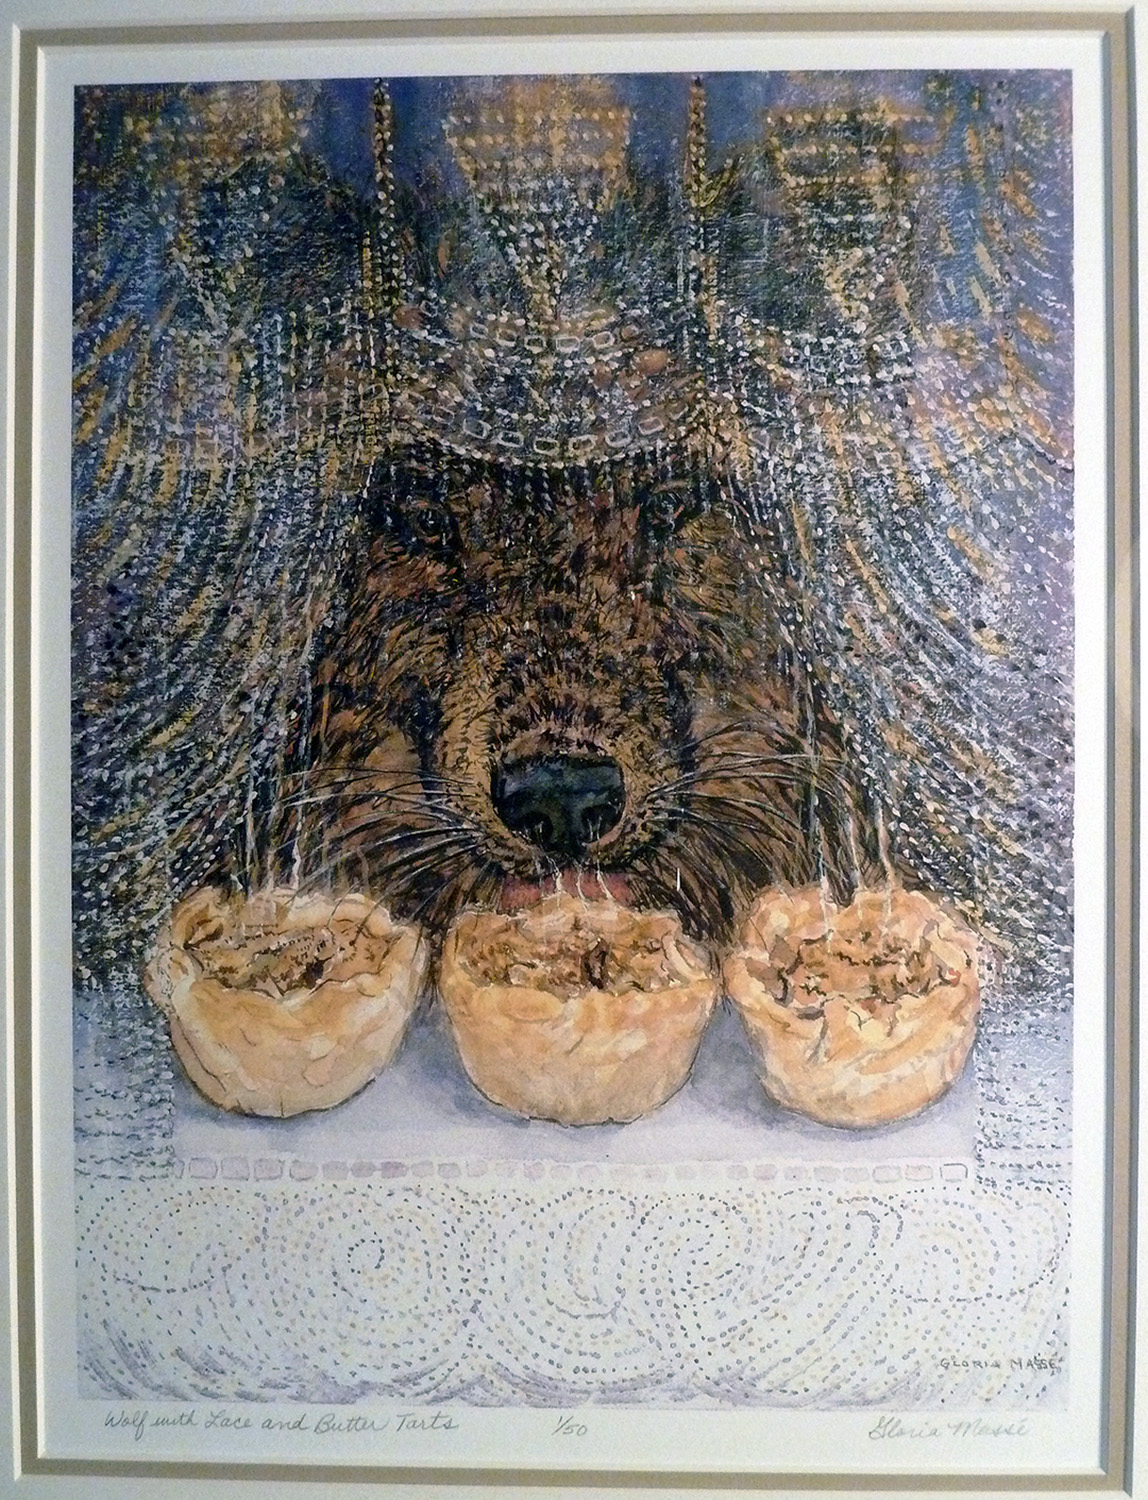 wolf with lace and butter tarts 2001 watercolour 12x9